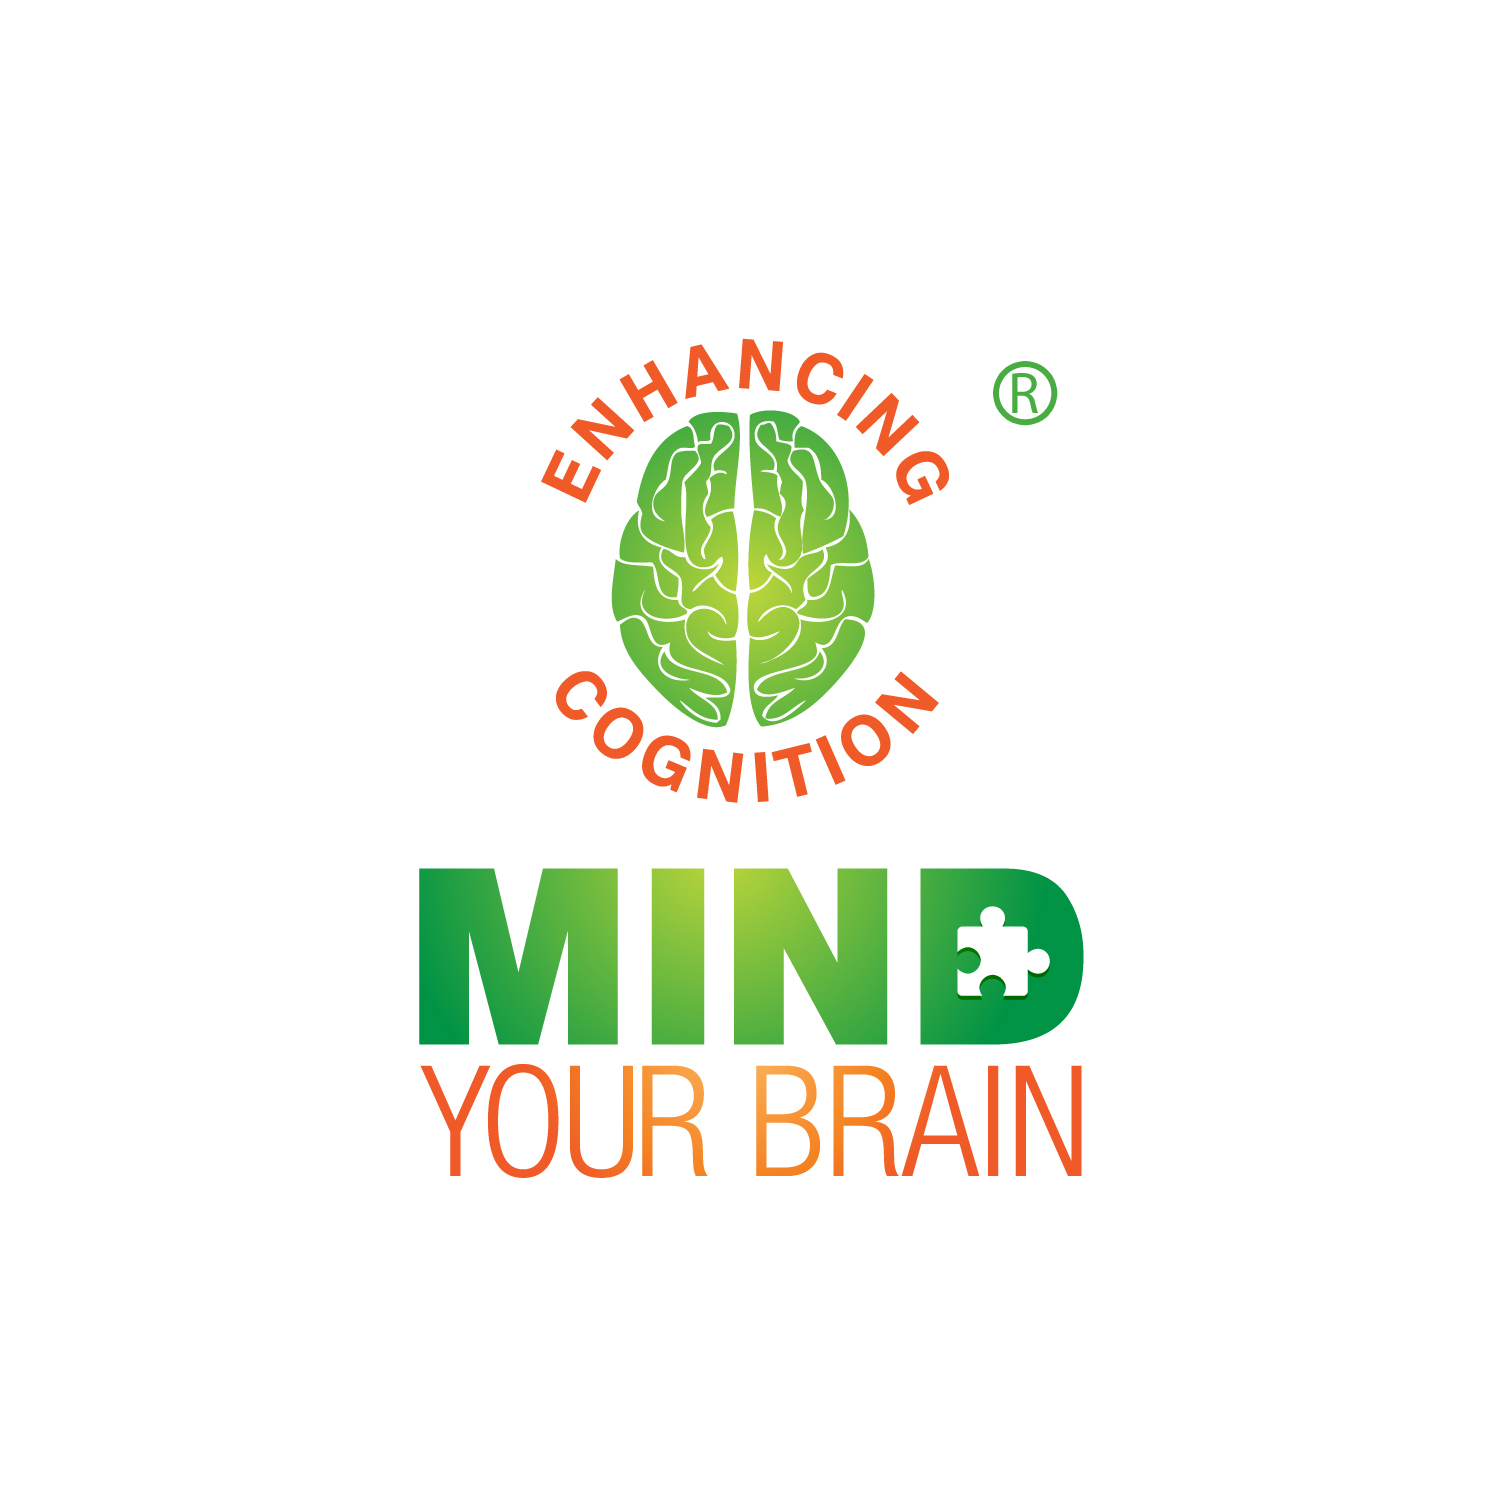 Counselling and Rehabilitation Services for Concussion, Brain Injury, and Aging